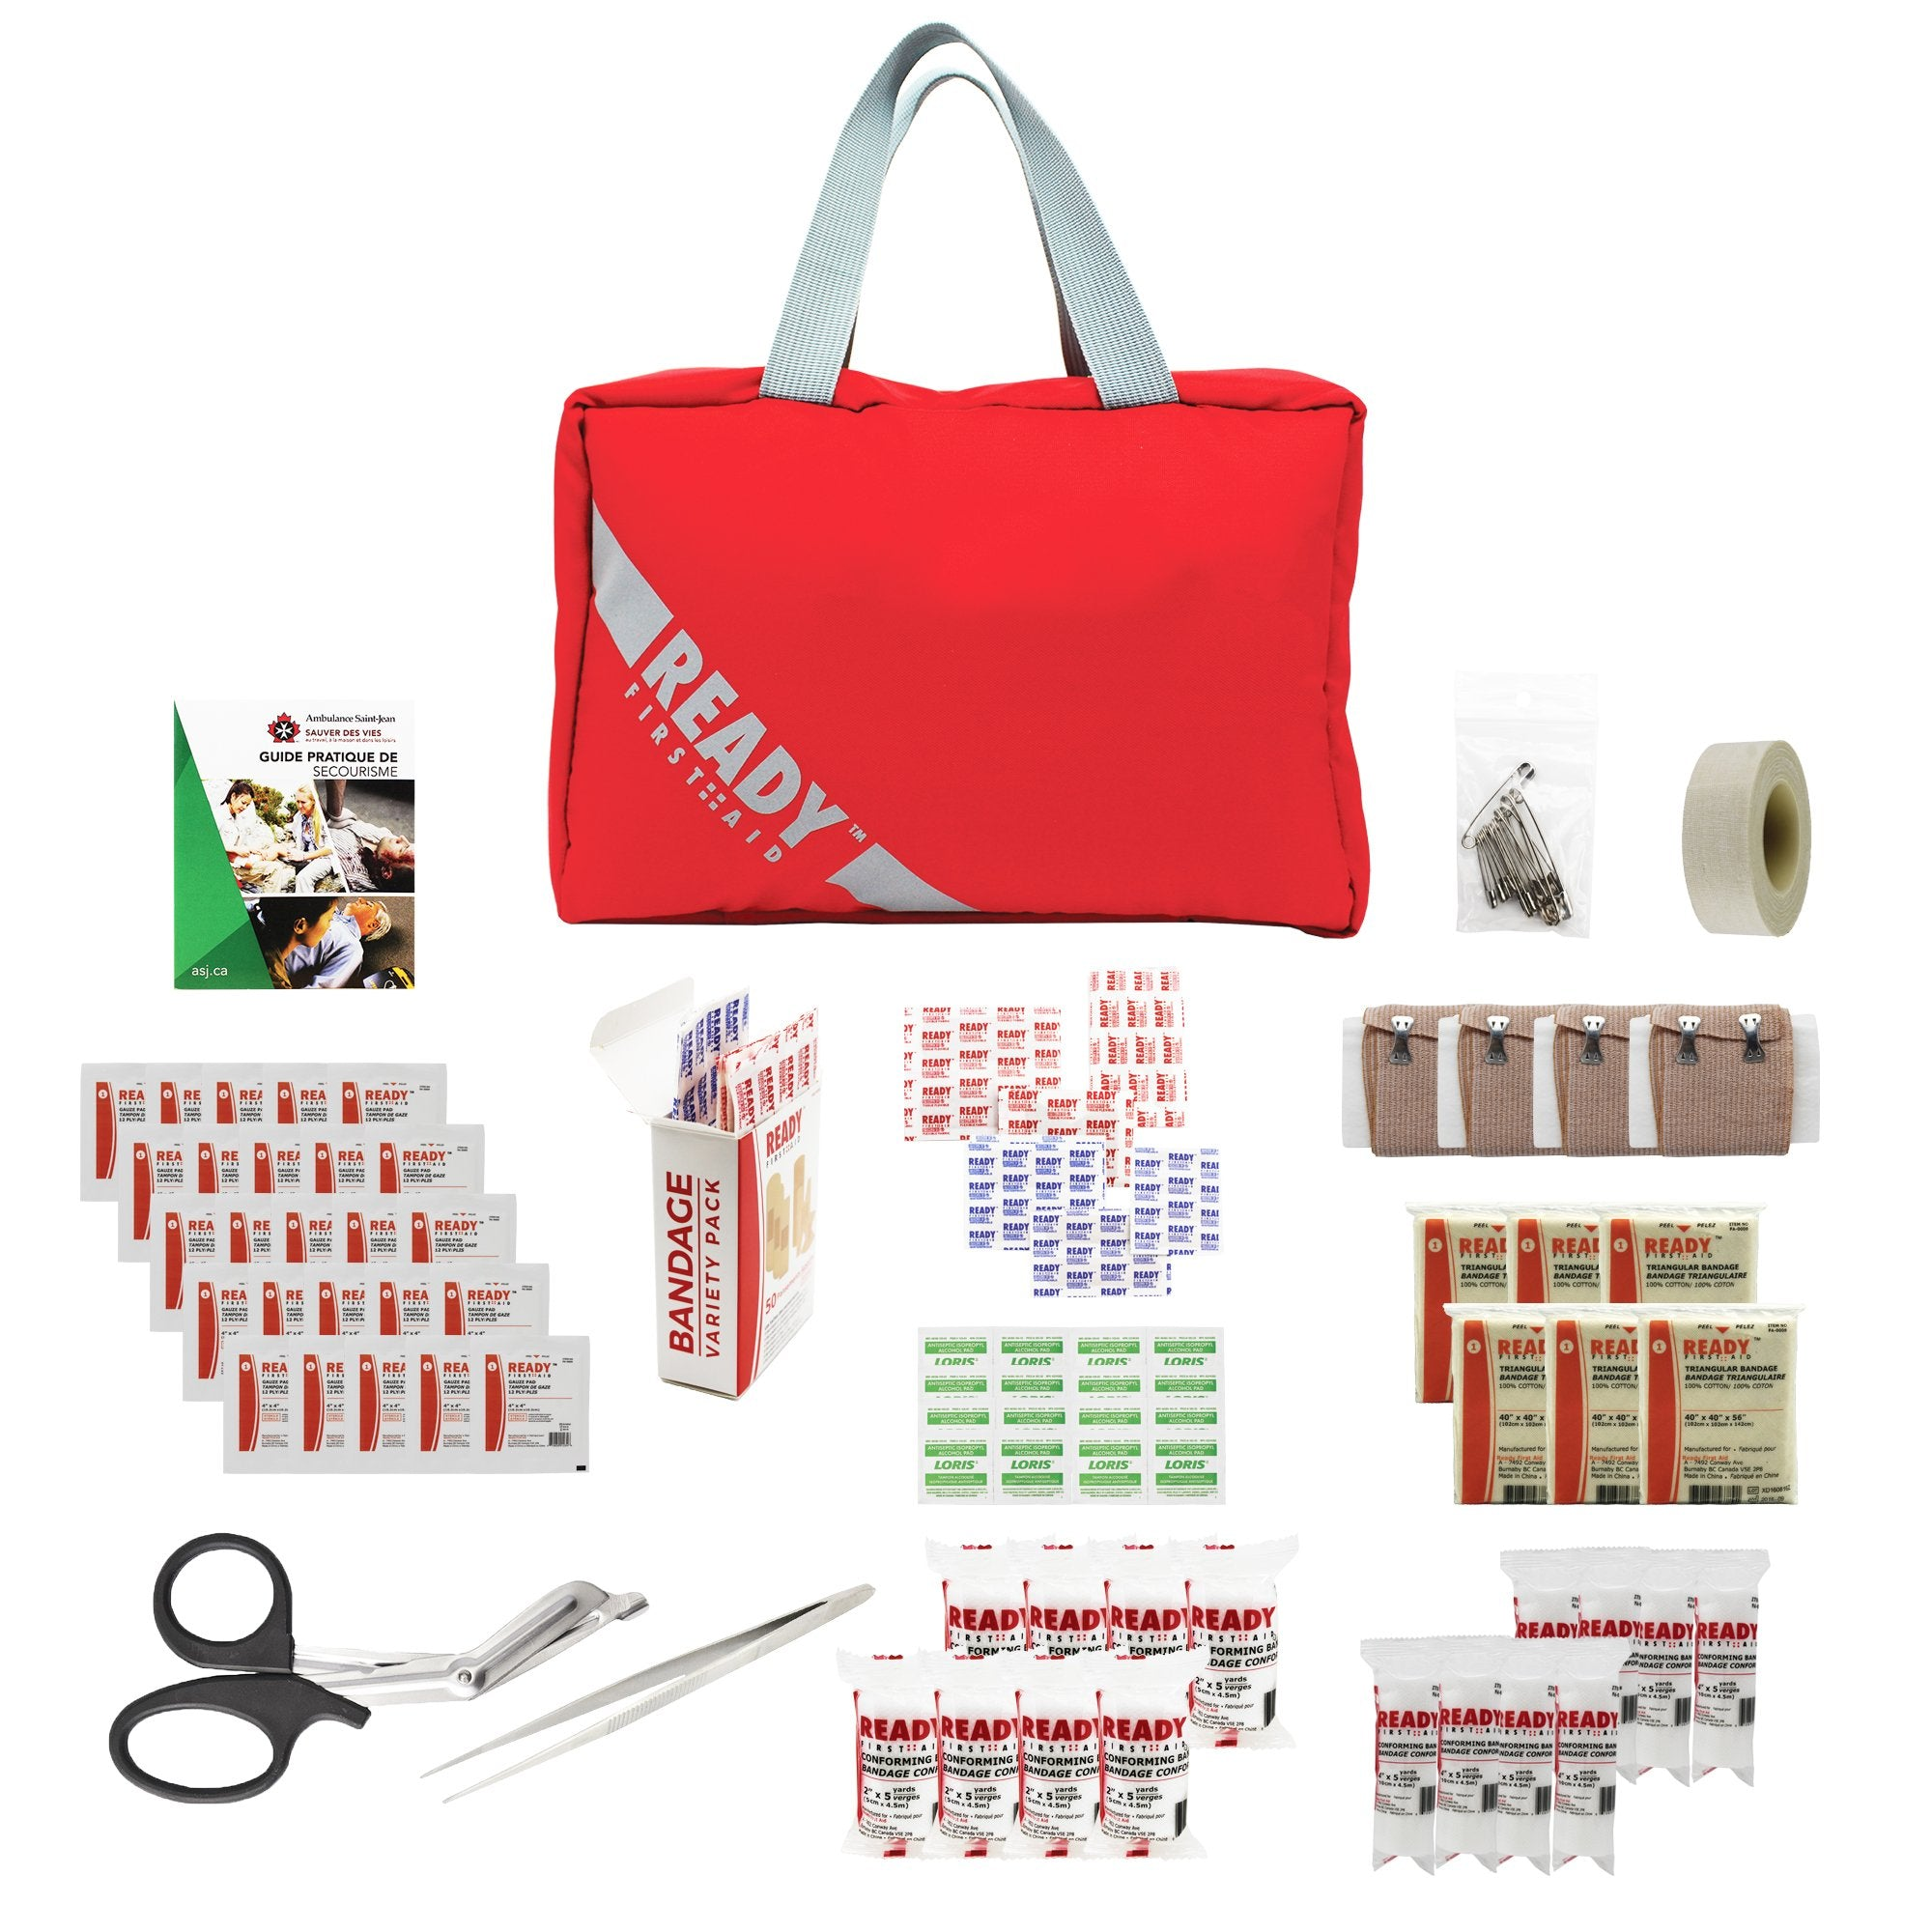 Quebec Regulation First Aid Kit 1-50 Employees/ Trousse de Premiers Soins 1-50 employees